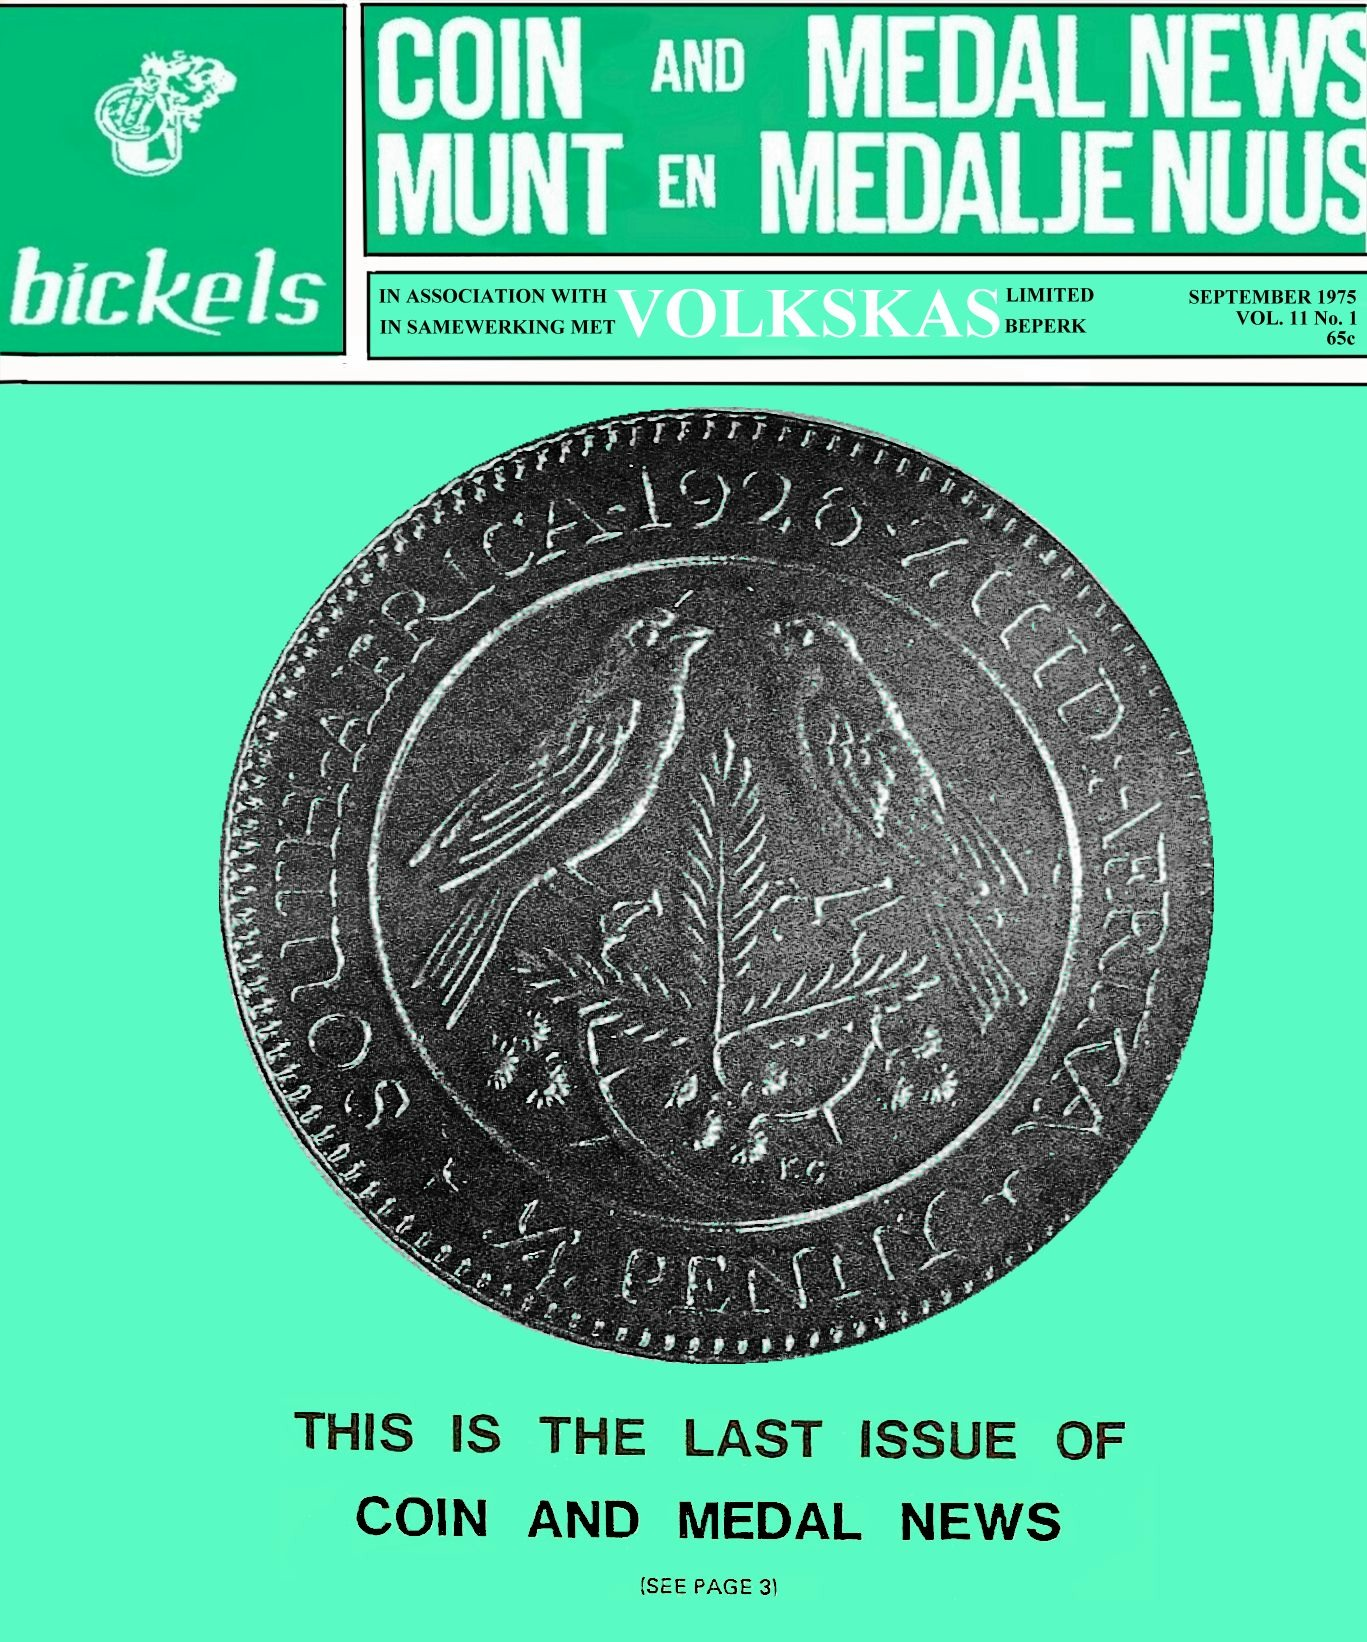 Bickels Coin & Medal News September 1975 Vol 11 No 1